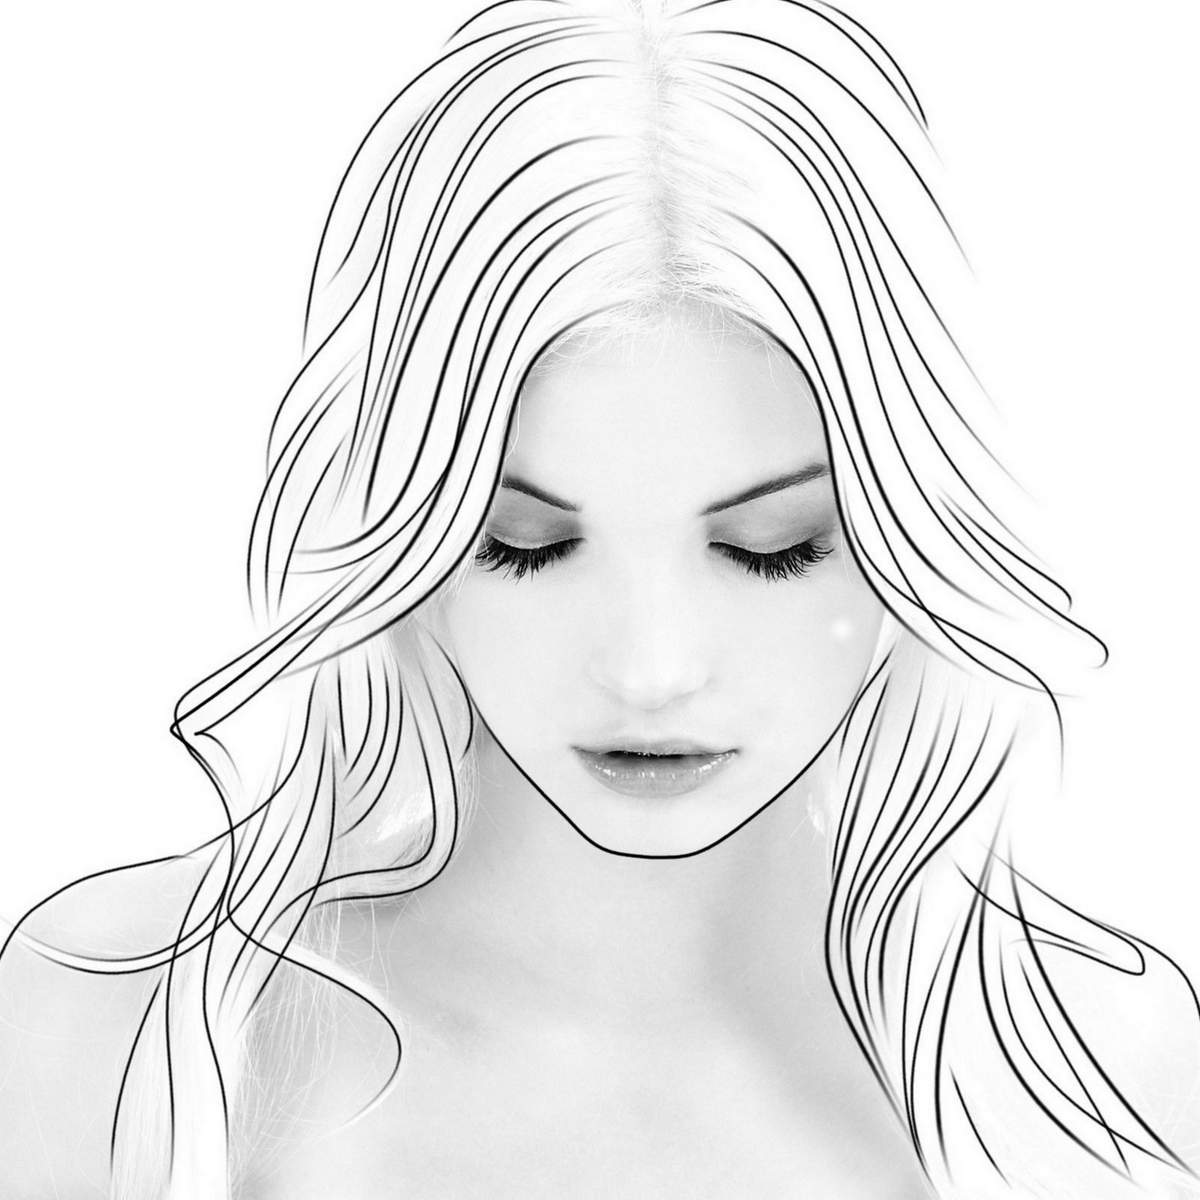 comment dessiner visage femme. Black Bedroom Furniture Sets. Home Design Ideas